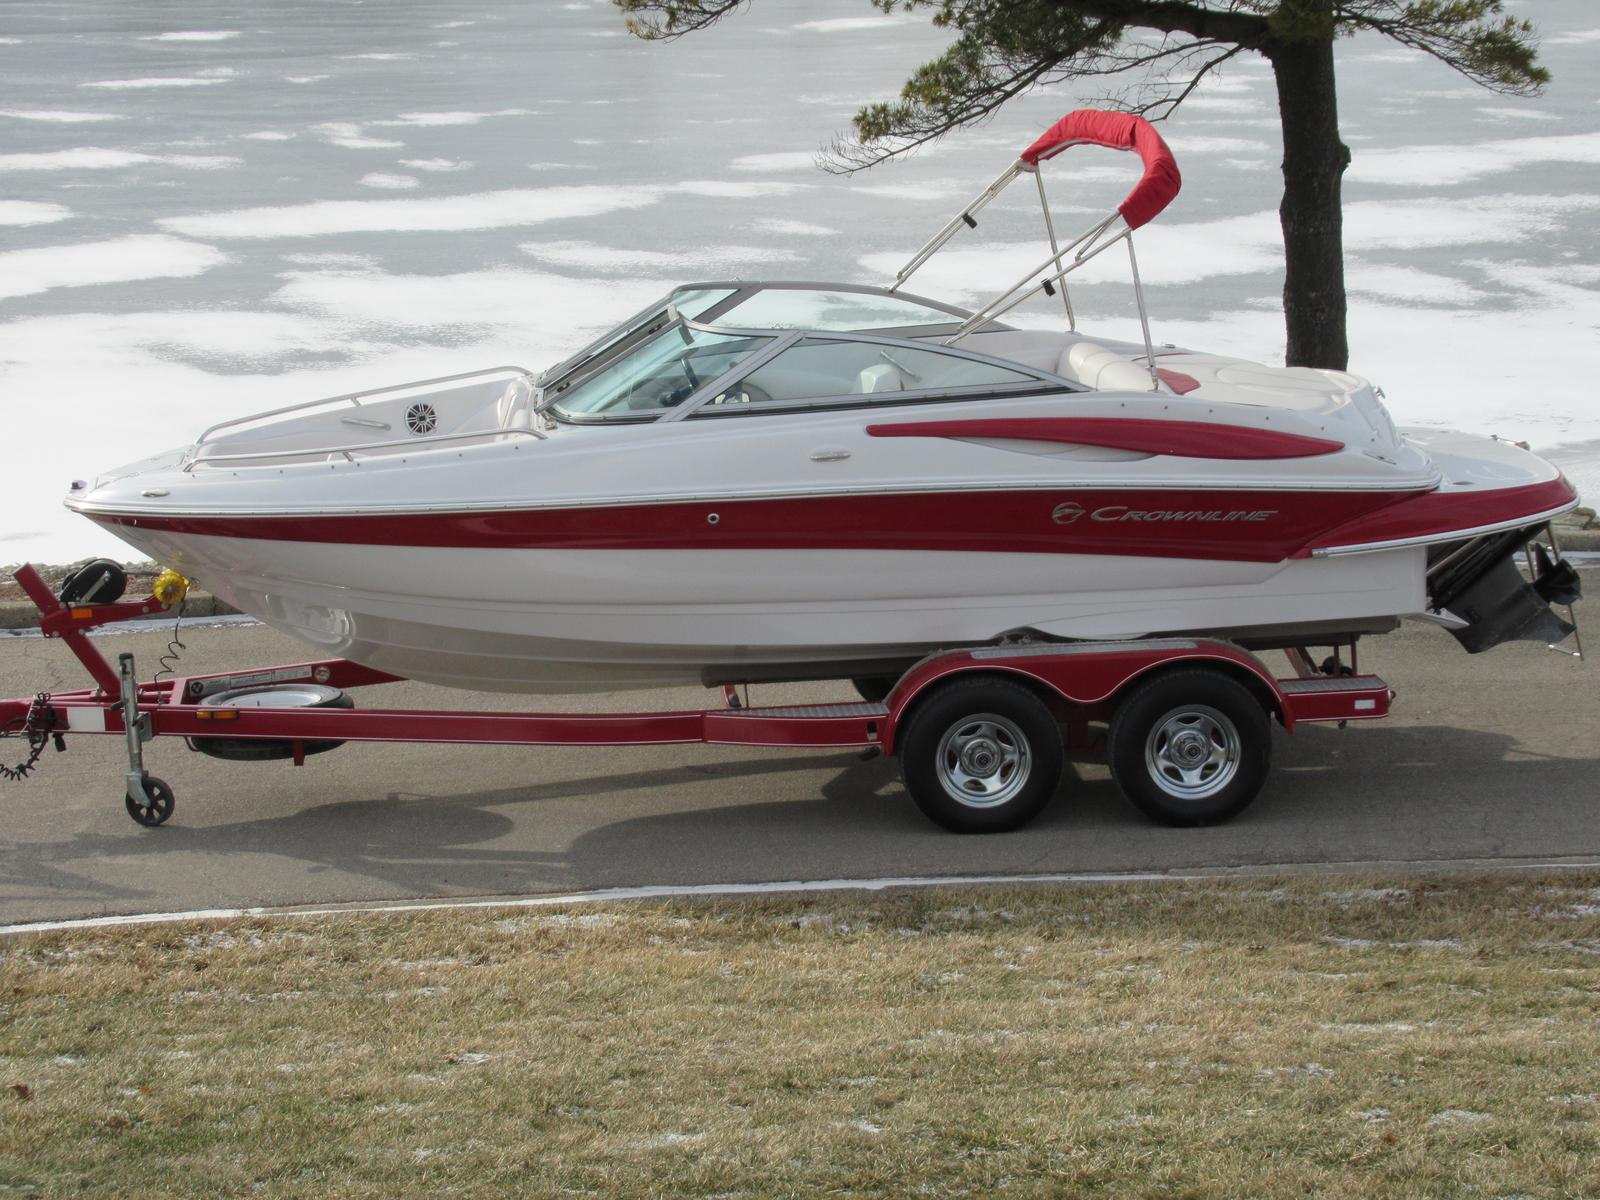 Inventory Just Add Water Boats Indianapolis, IN (844) 217-0919